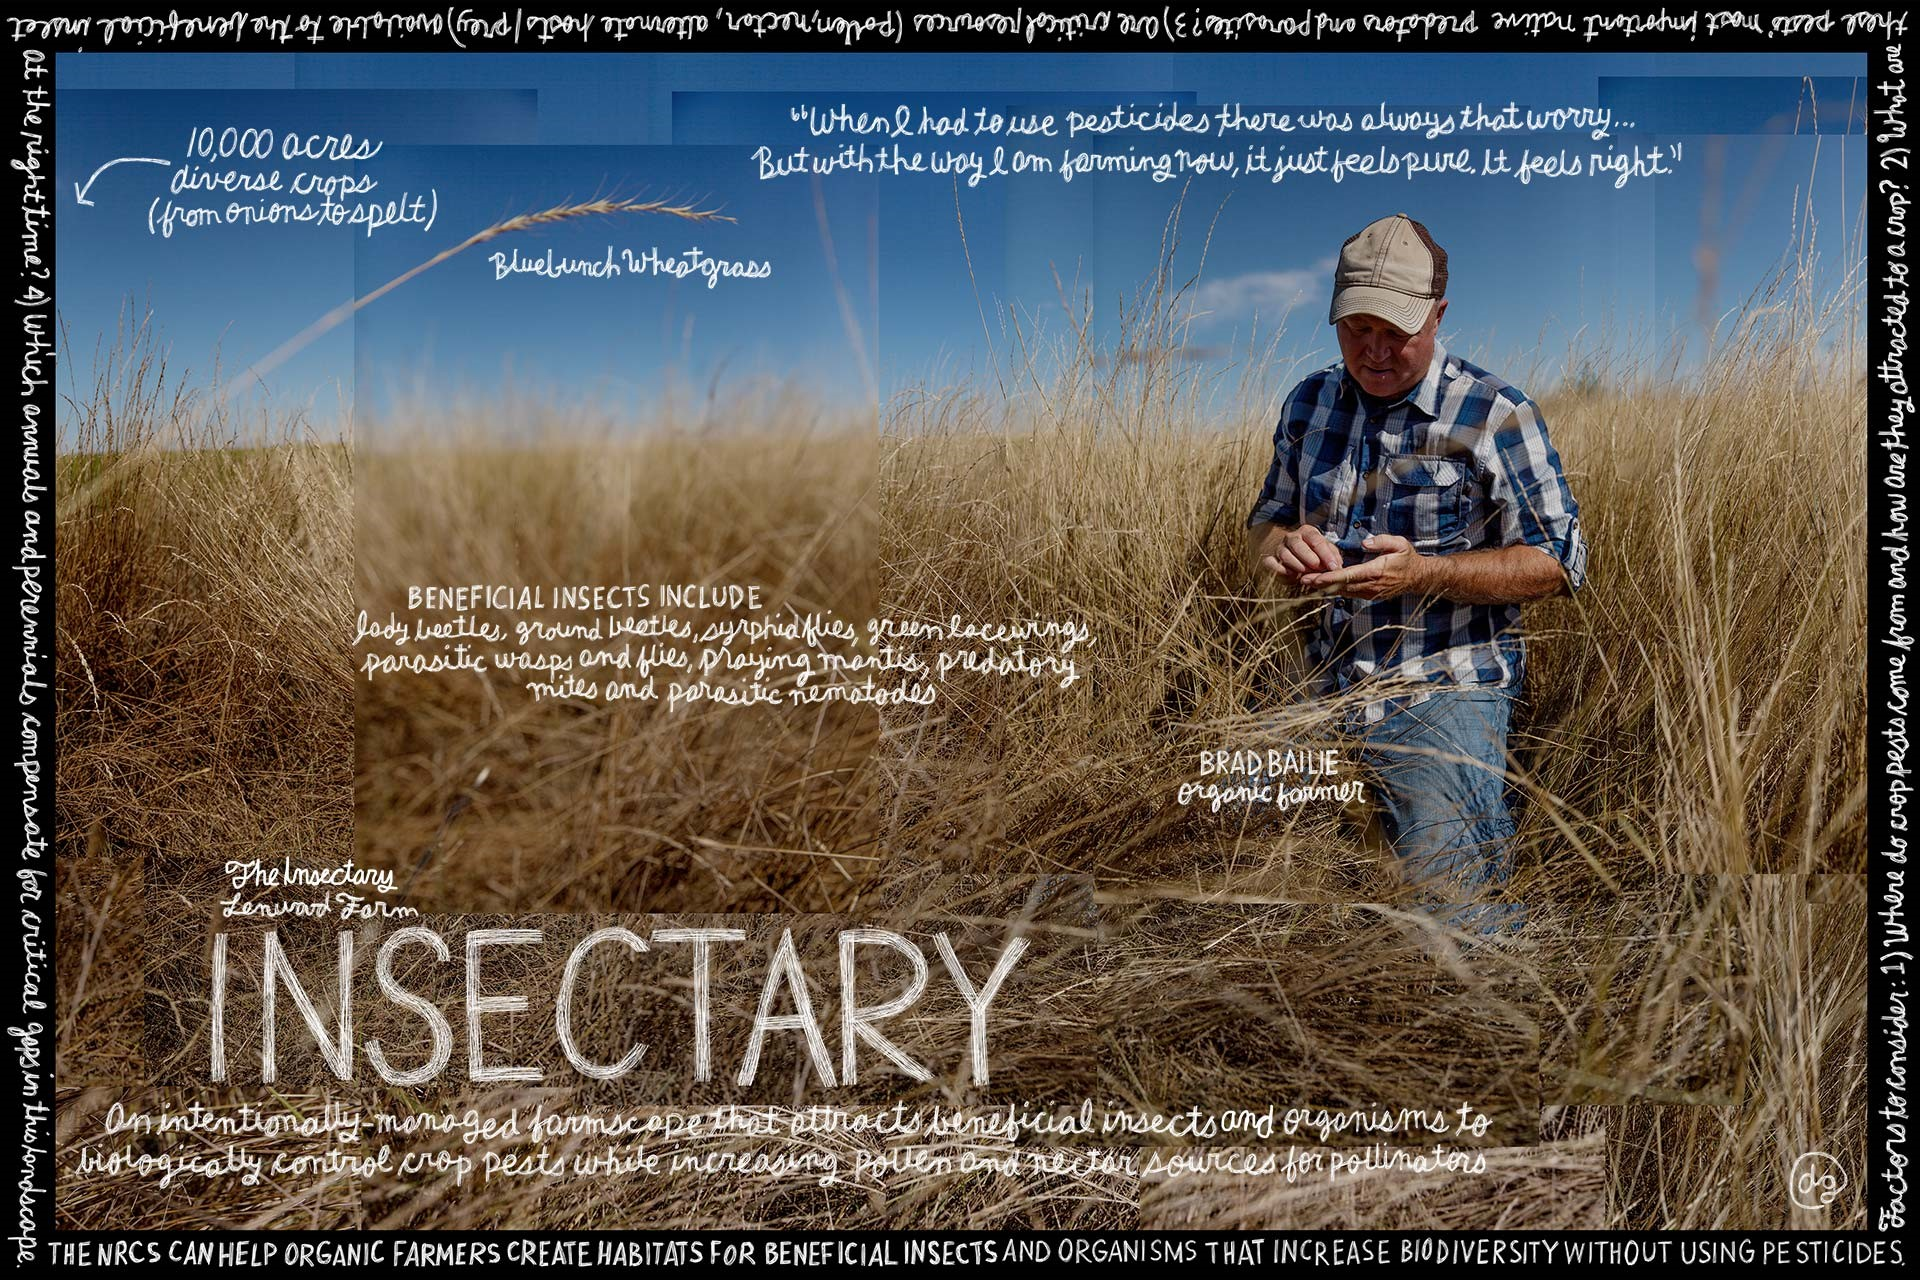 Insectary image